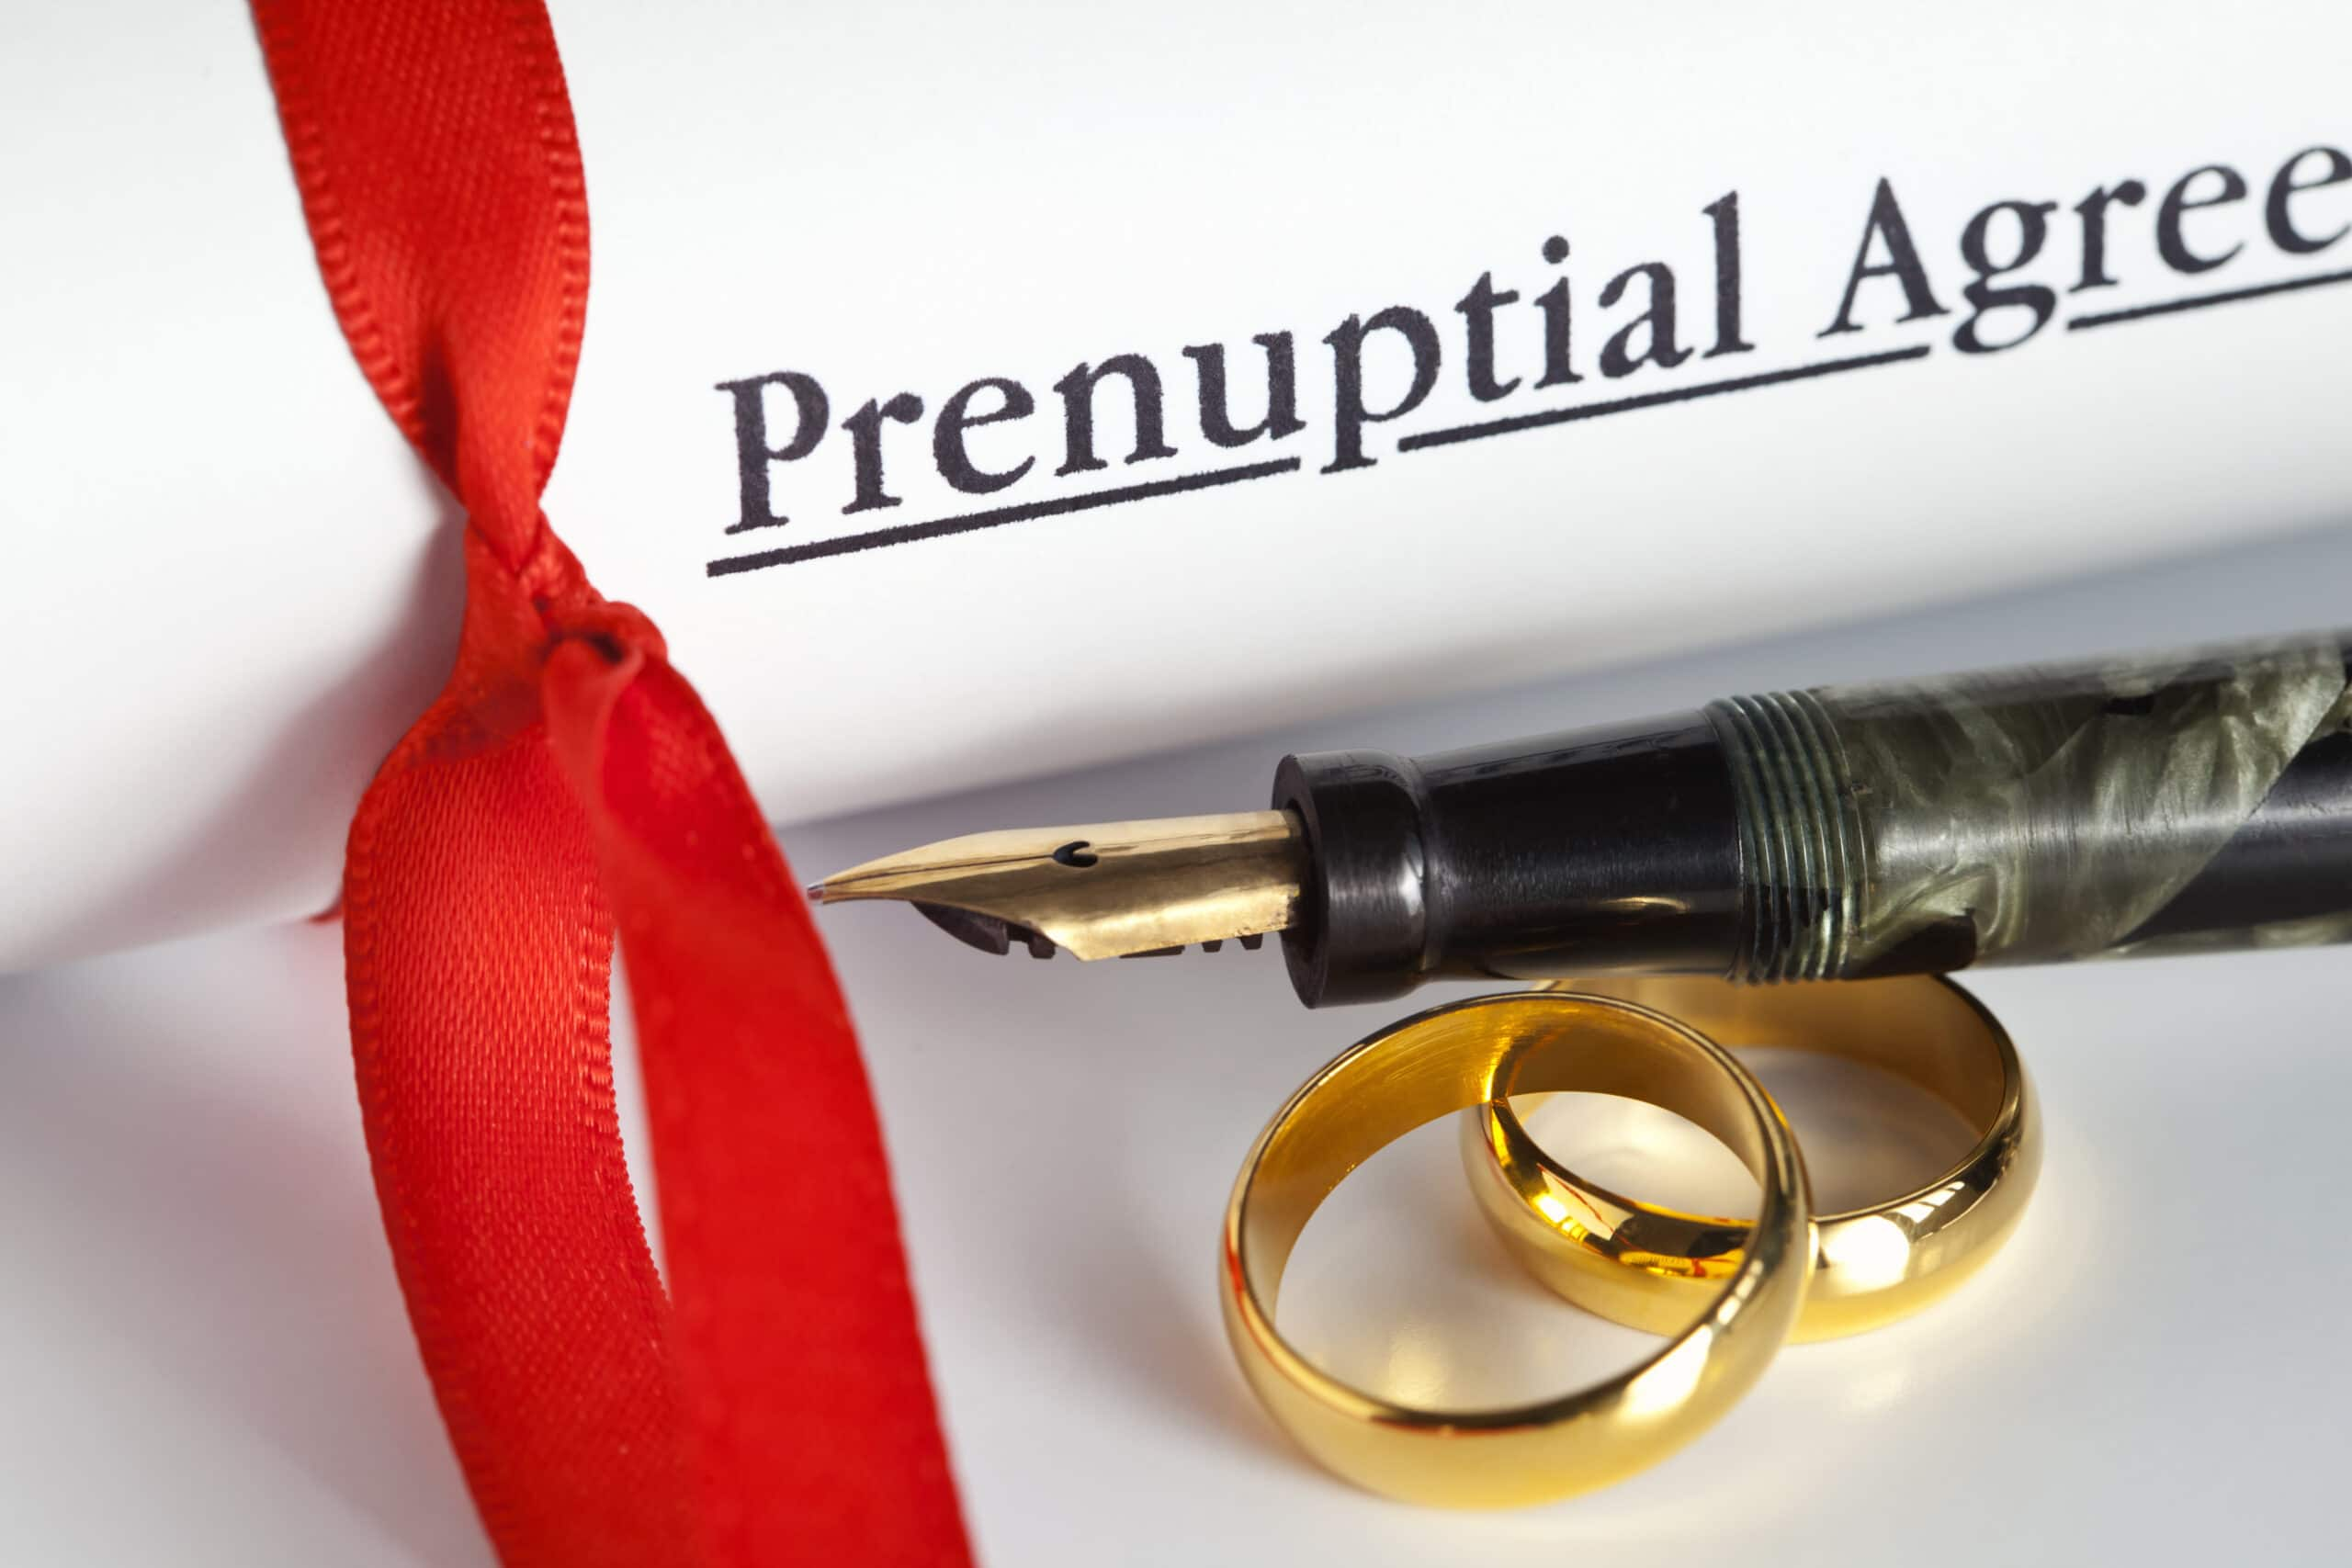 A Prenuptial Agreement Behind Two Gold Wedding Bands And A Pen